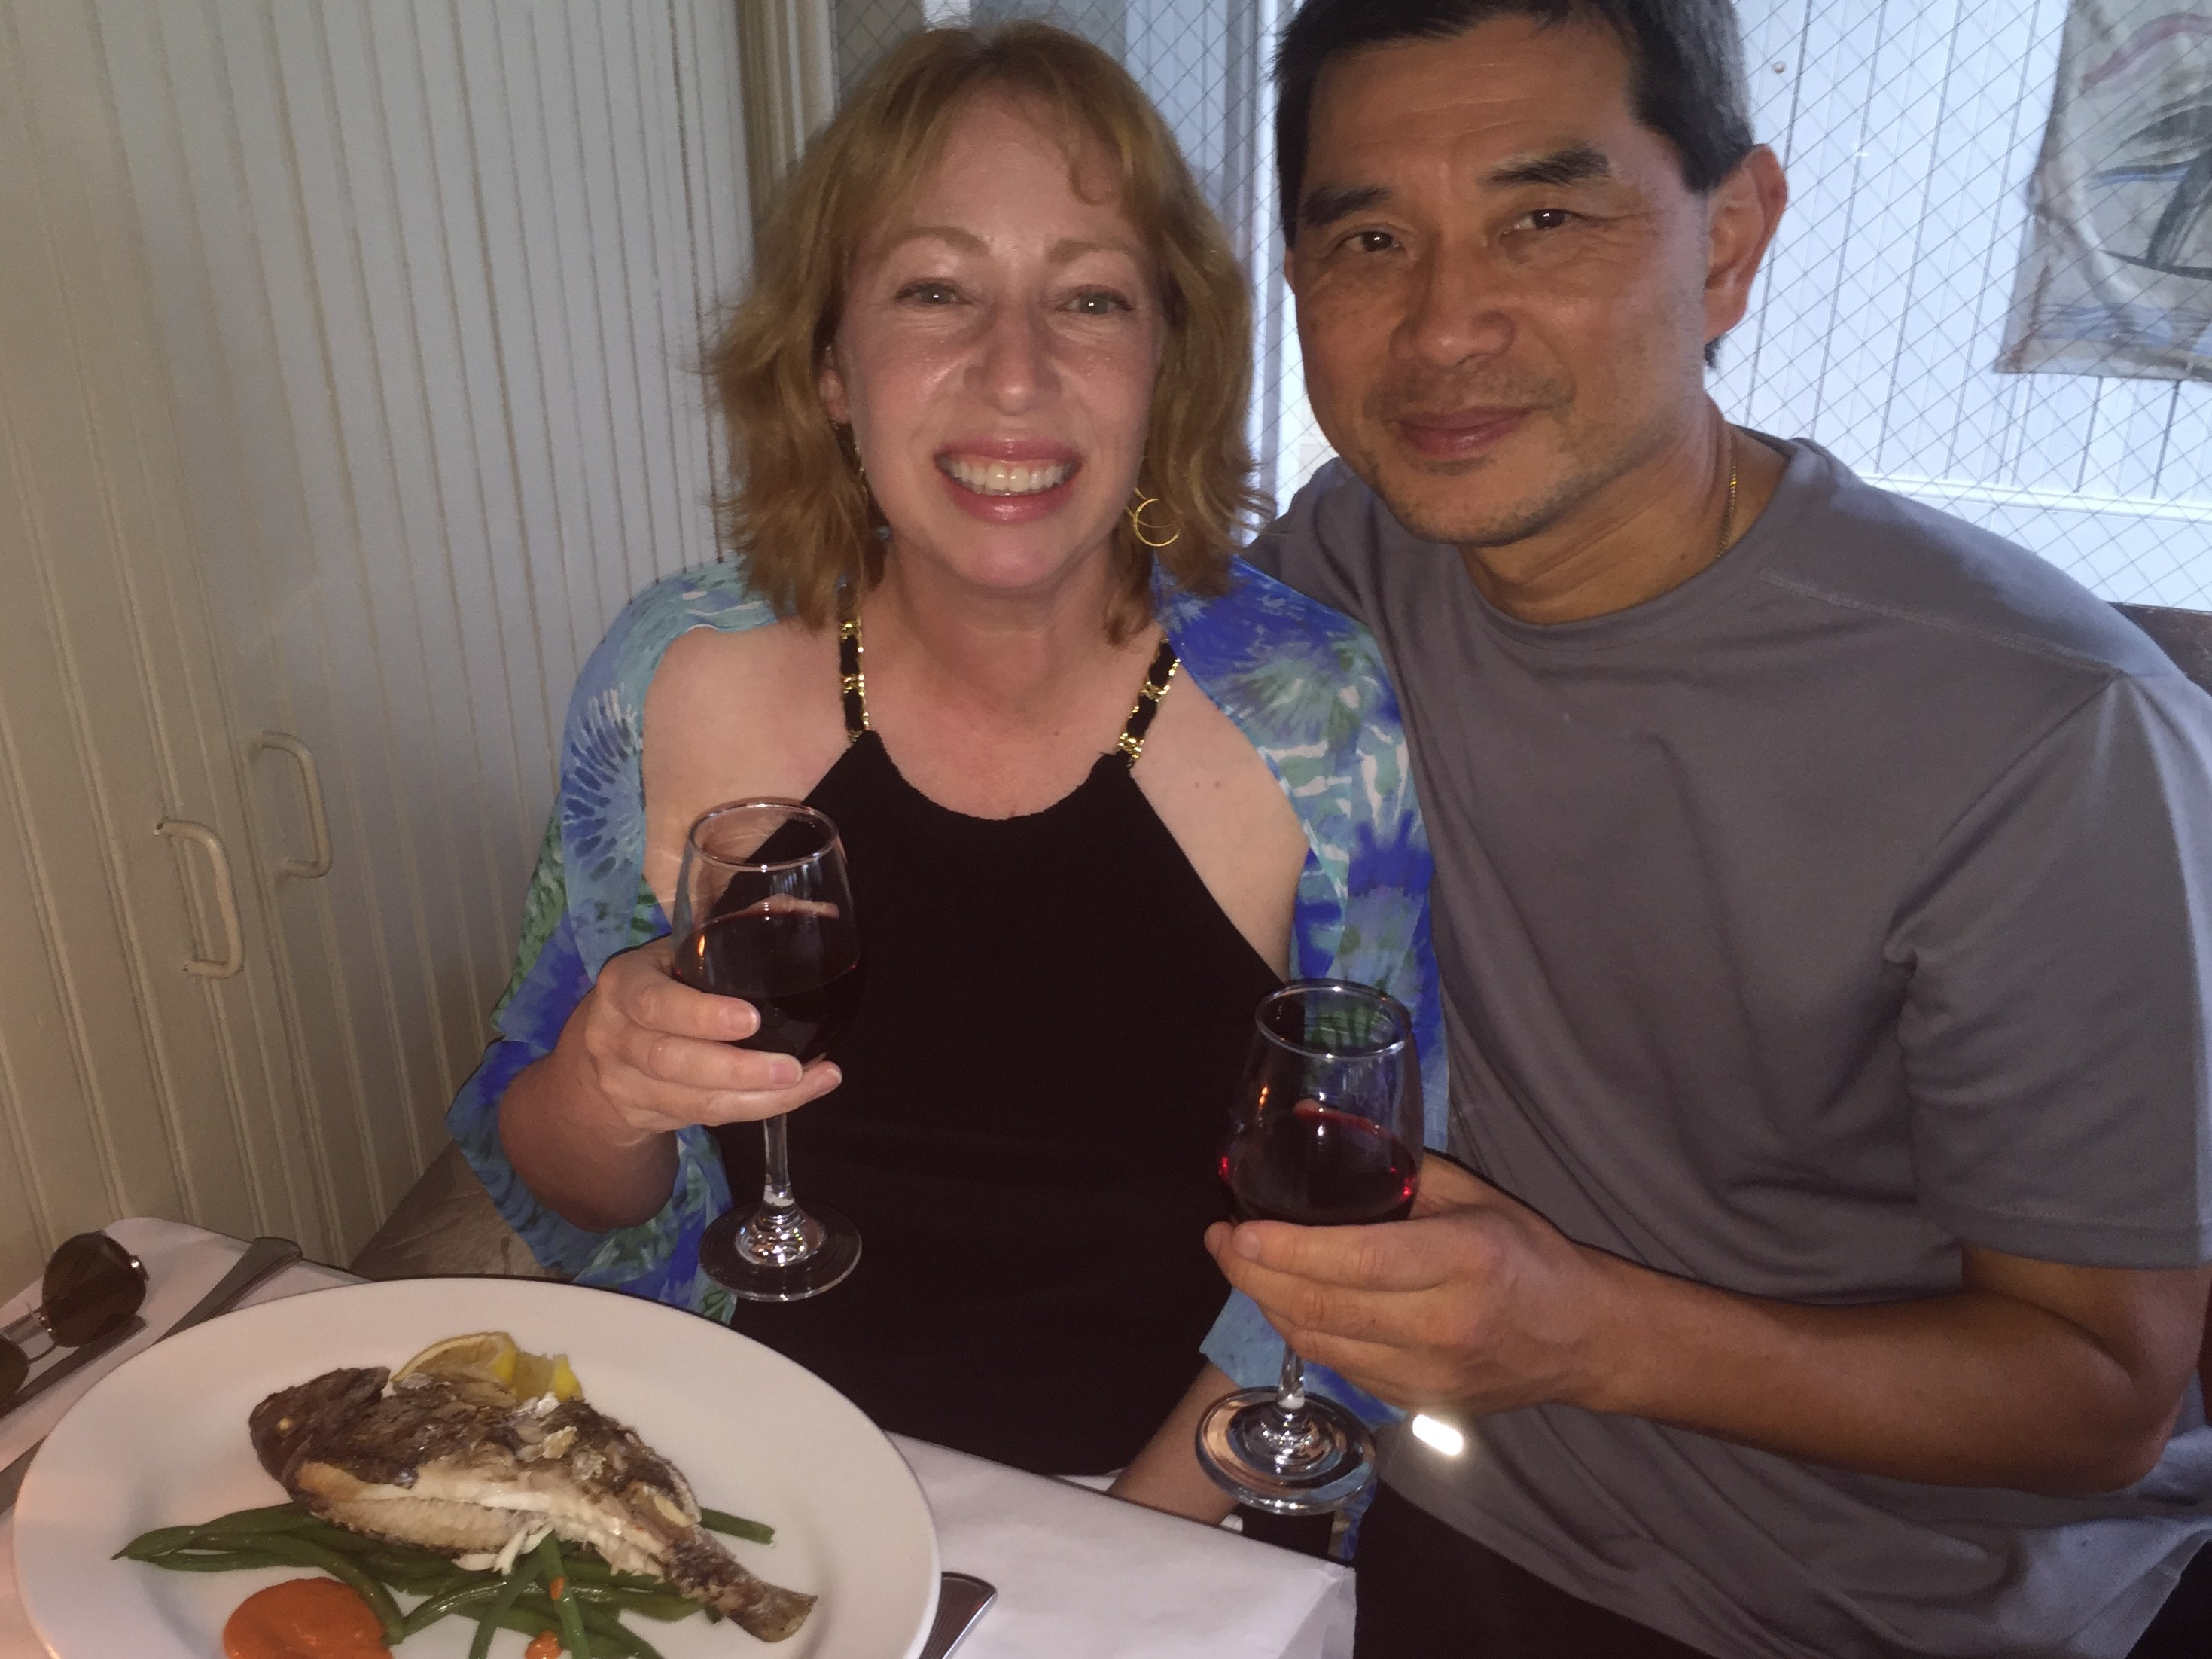 Happy couple at a table with wine in hand and a plate of fish and vegetables